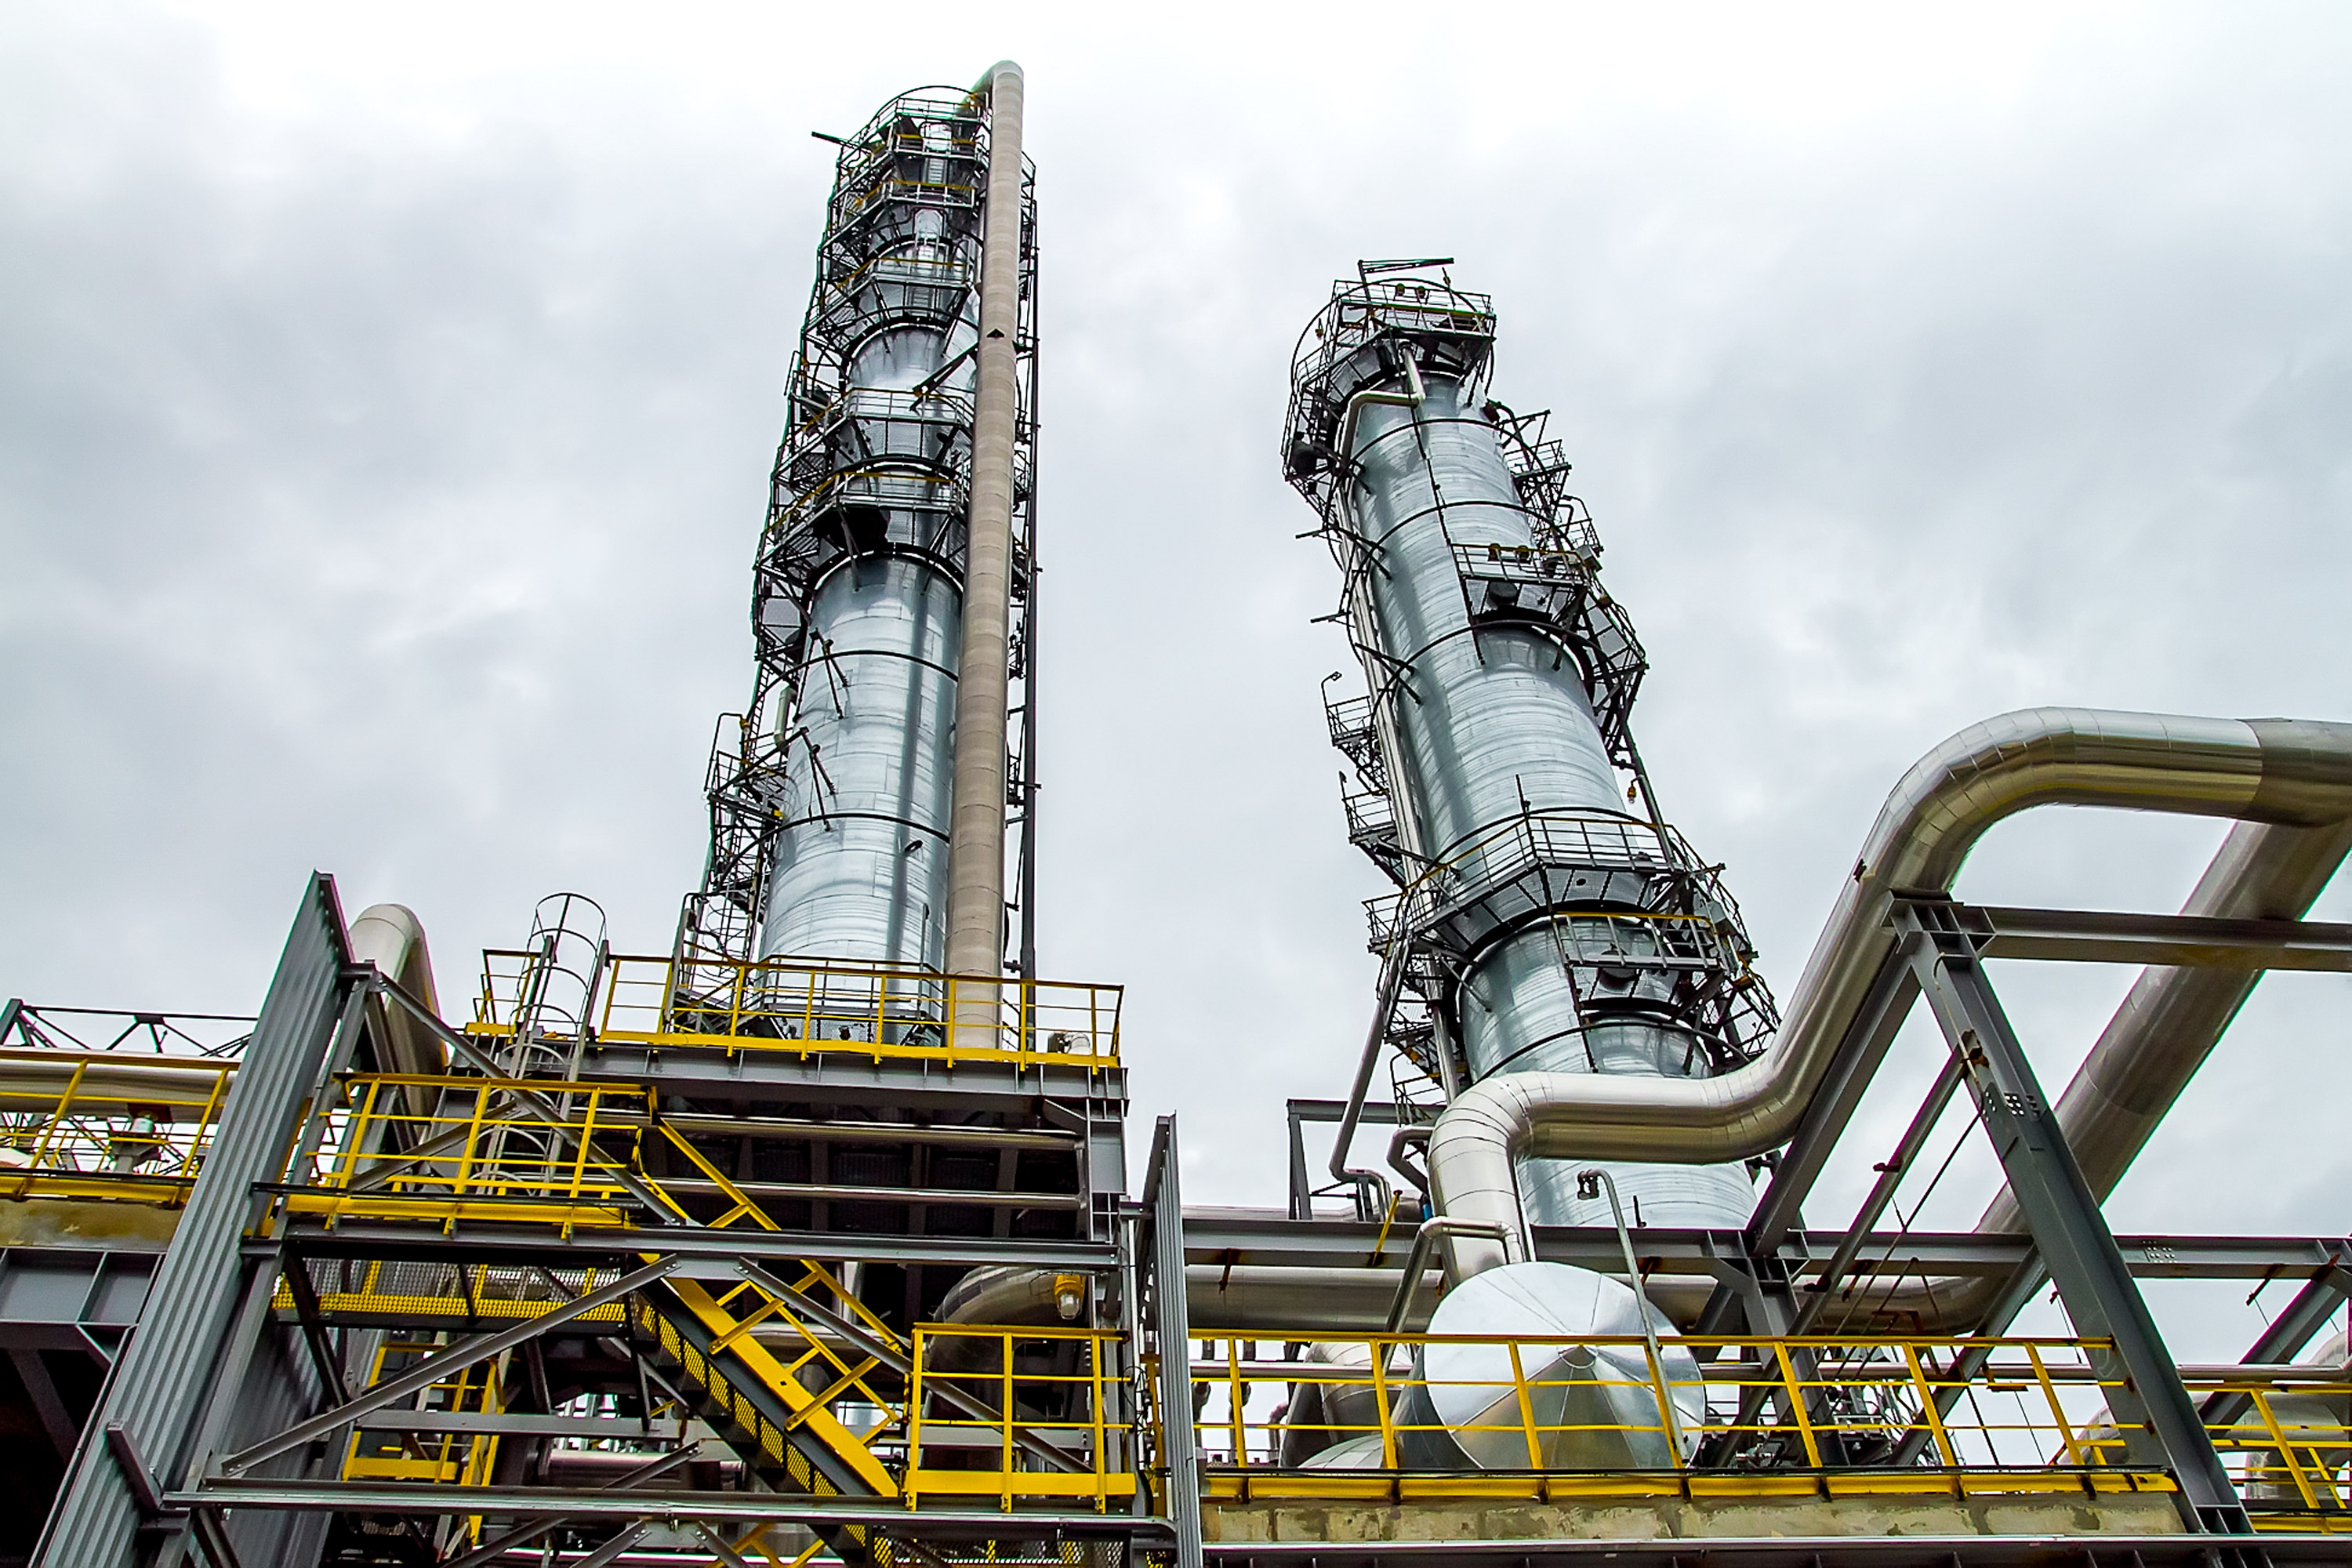 UCC Shchekinoazot's new co-production plant is the first in the world to produce more methanol than ammonia-1